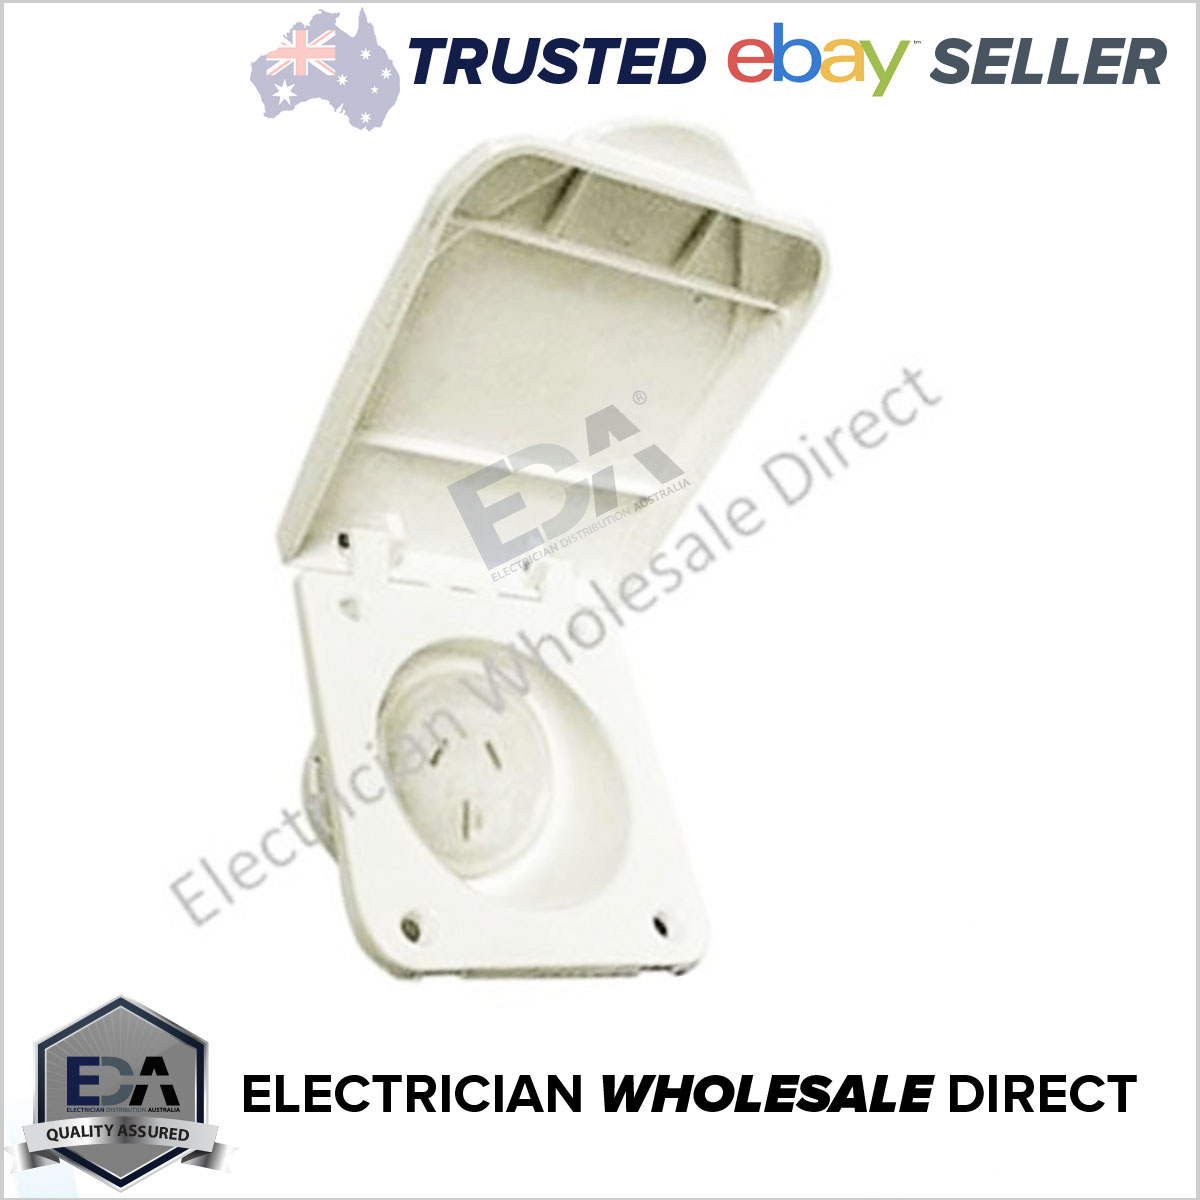 15 amp power outlet caravan motor home and rv 240v socket electrical 100 quality assured electrical gear fully tested to australian electrical standards as 3123 5 year warranty all products freerunsca Images